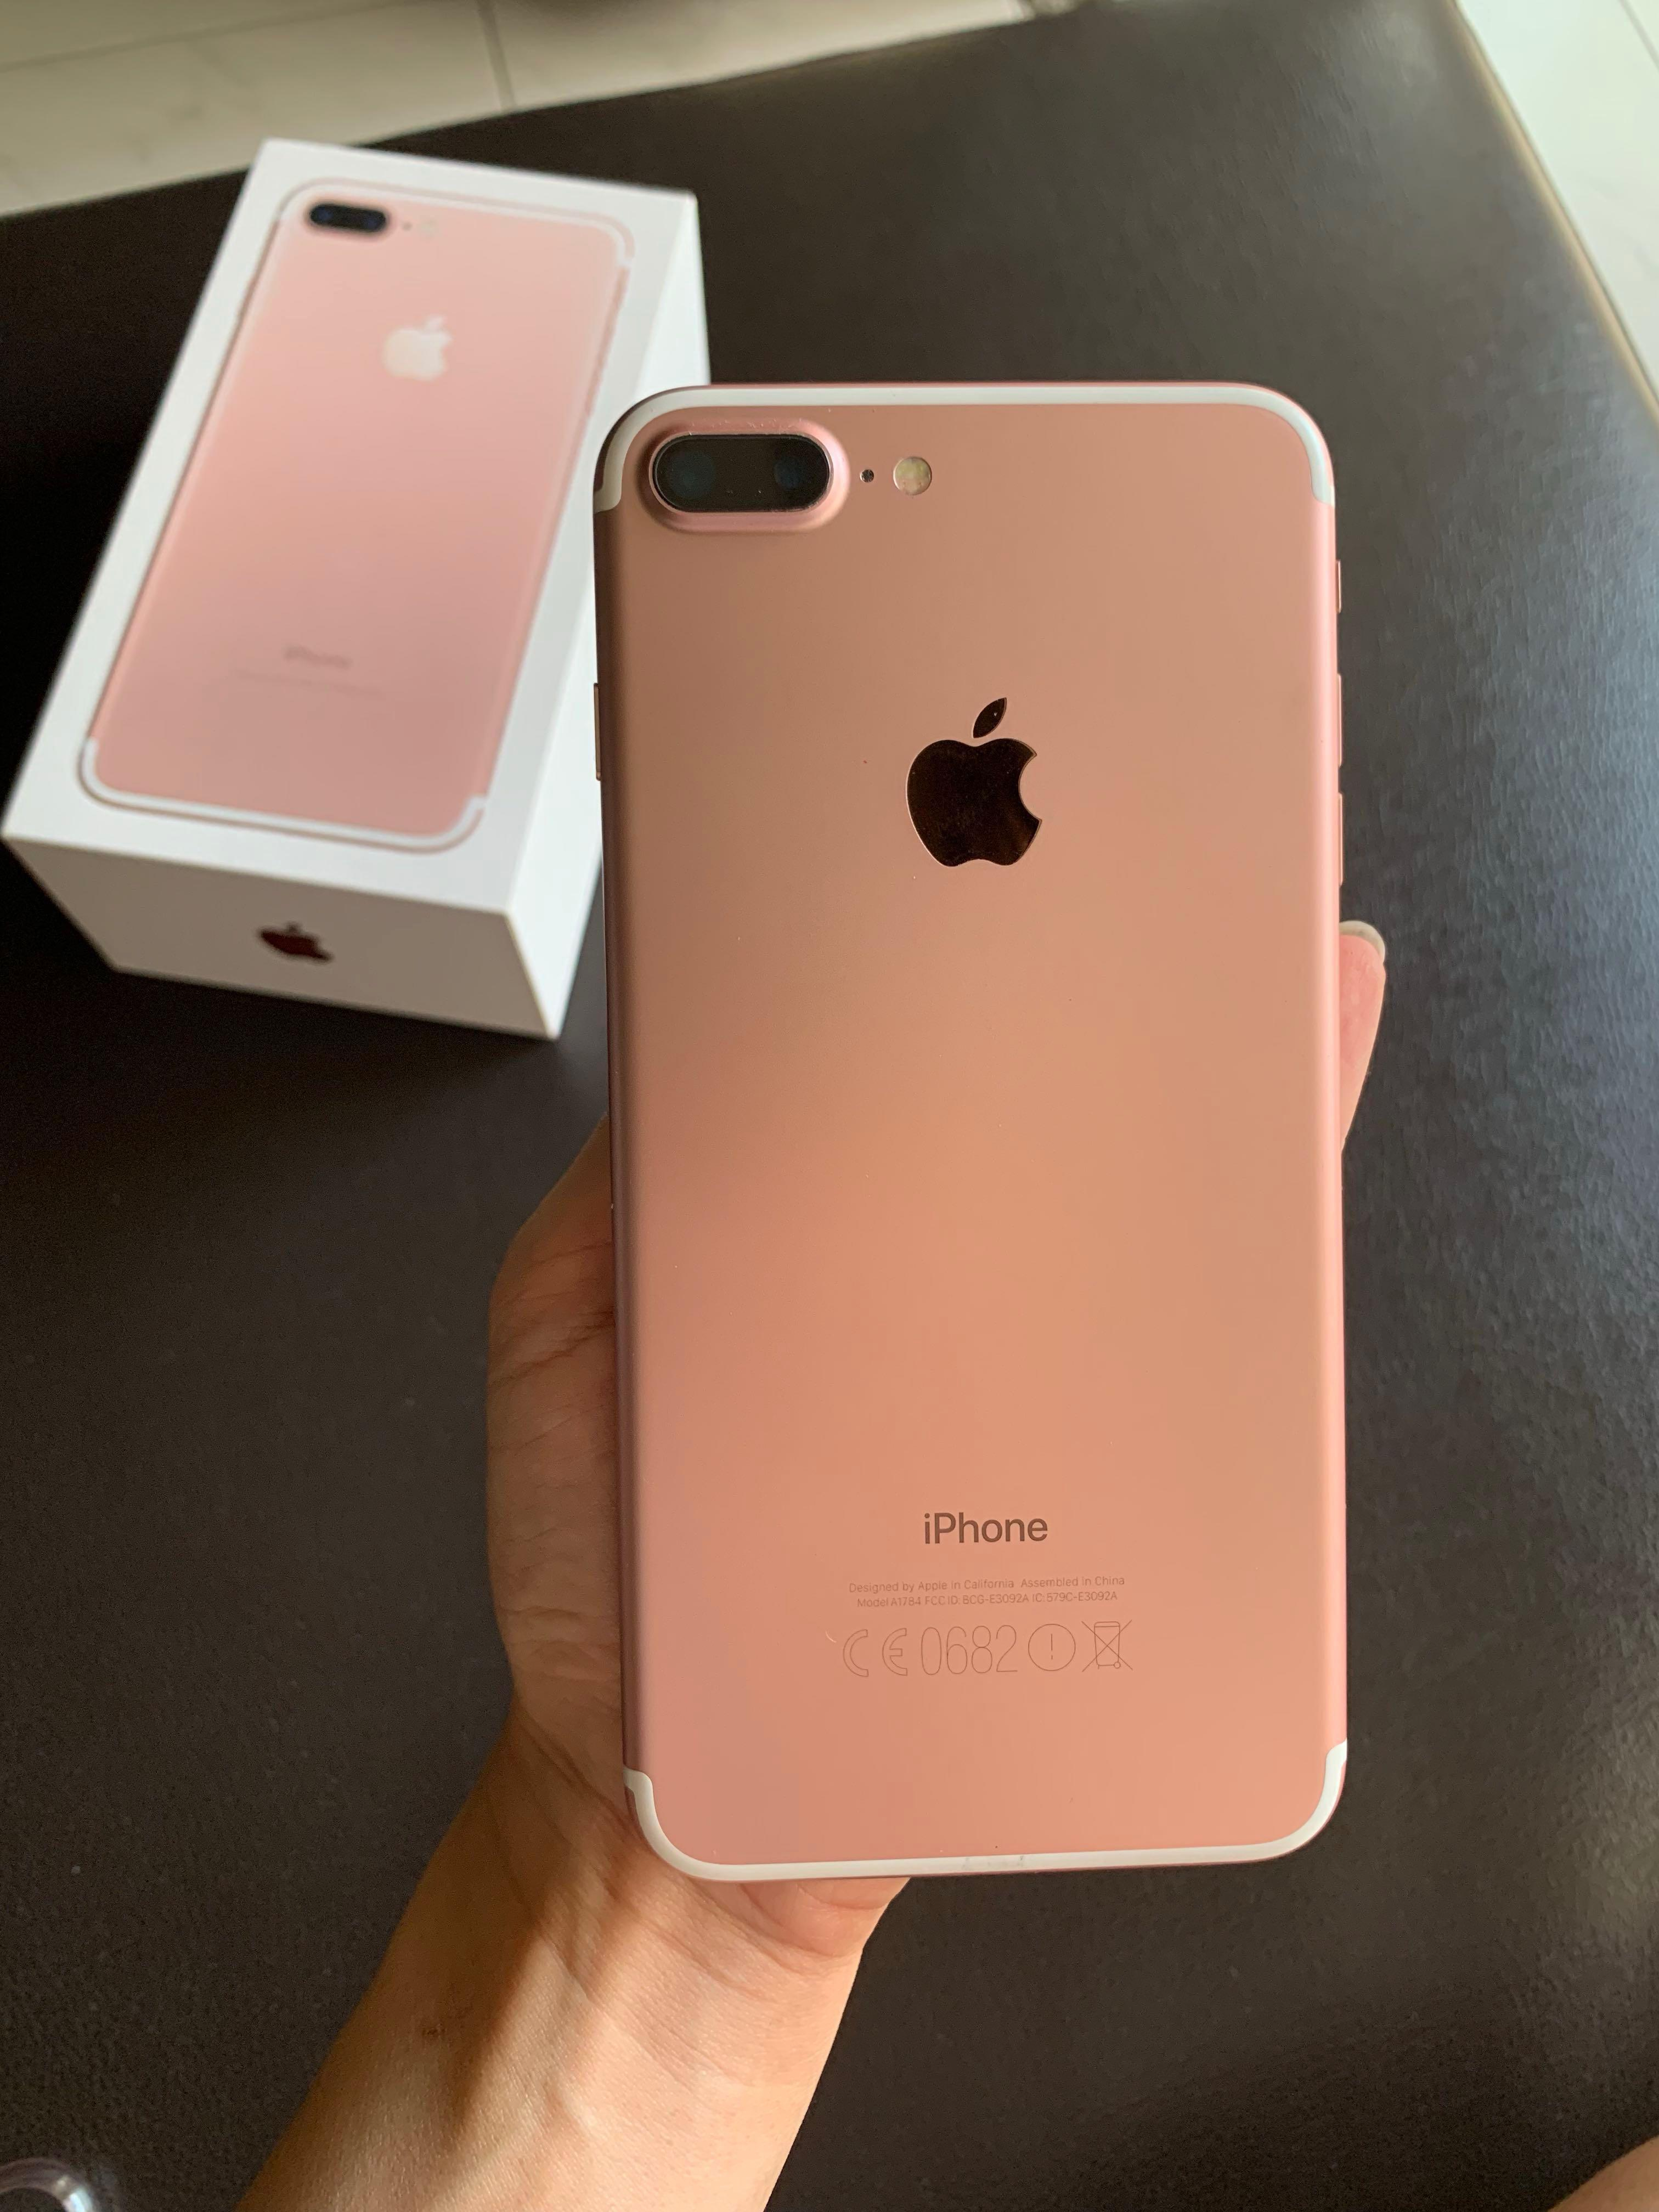 Iphone 7 Plus Rose Gold, Mobile Phones & Tablets, iPhone, iPhone 7 Series  on Carousell